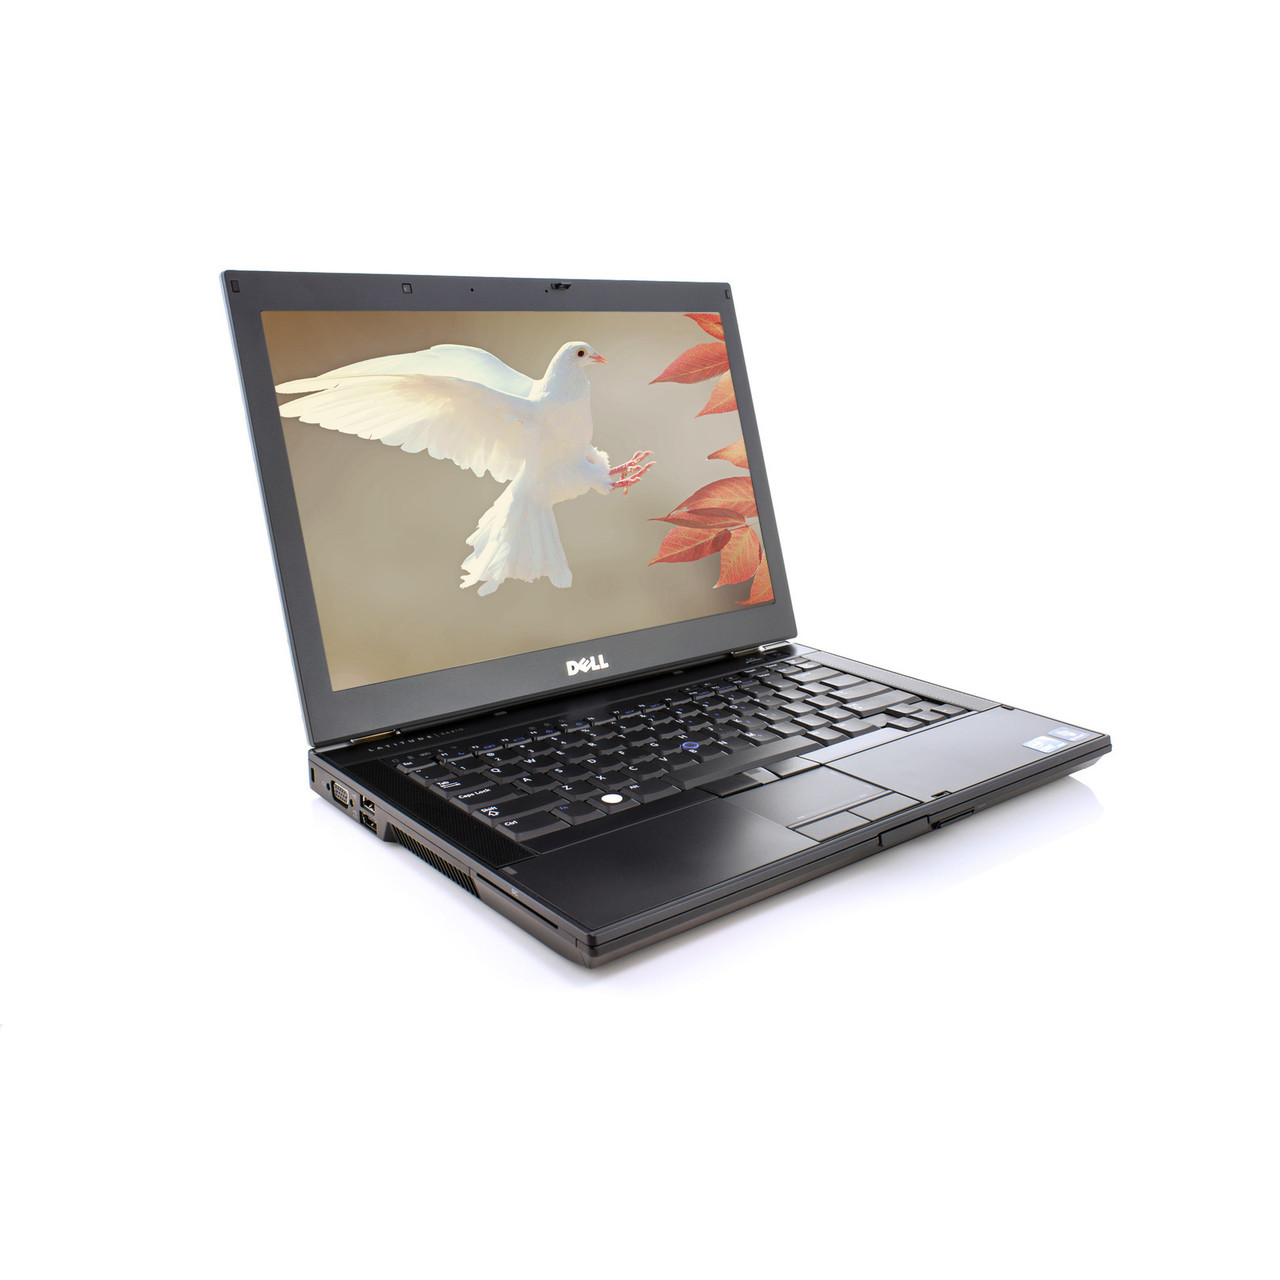 Dell Latitude E6510 Notebook Multi-Touch Touchpad Driver UPDATE